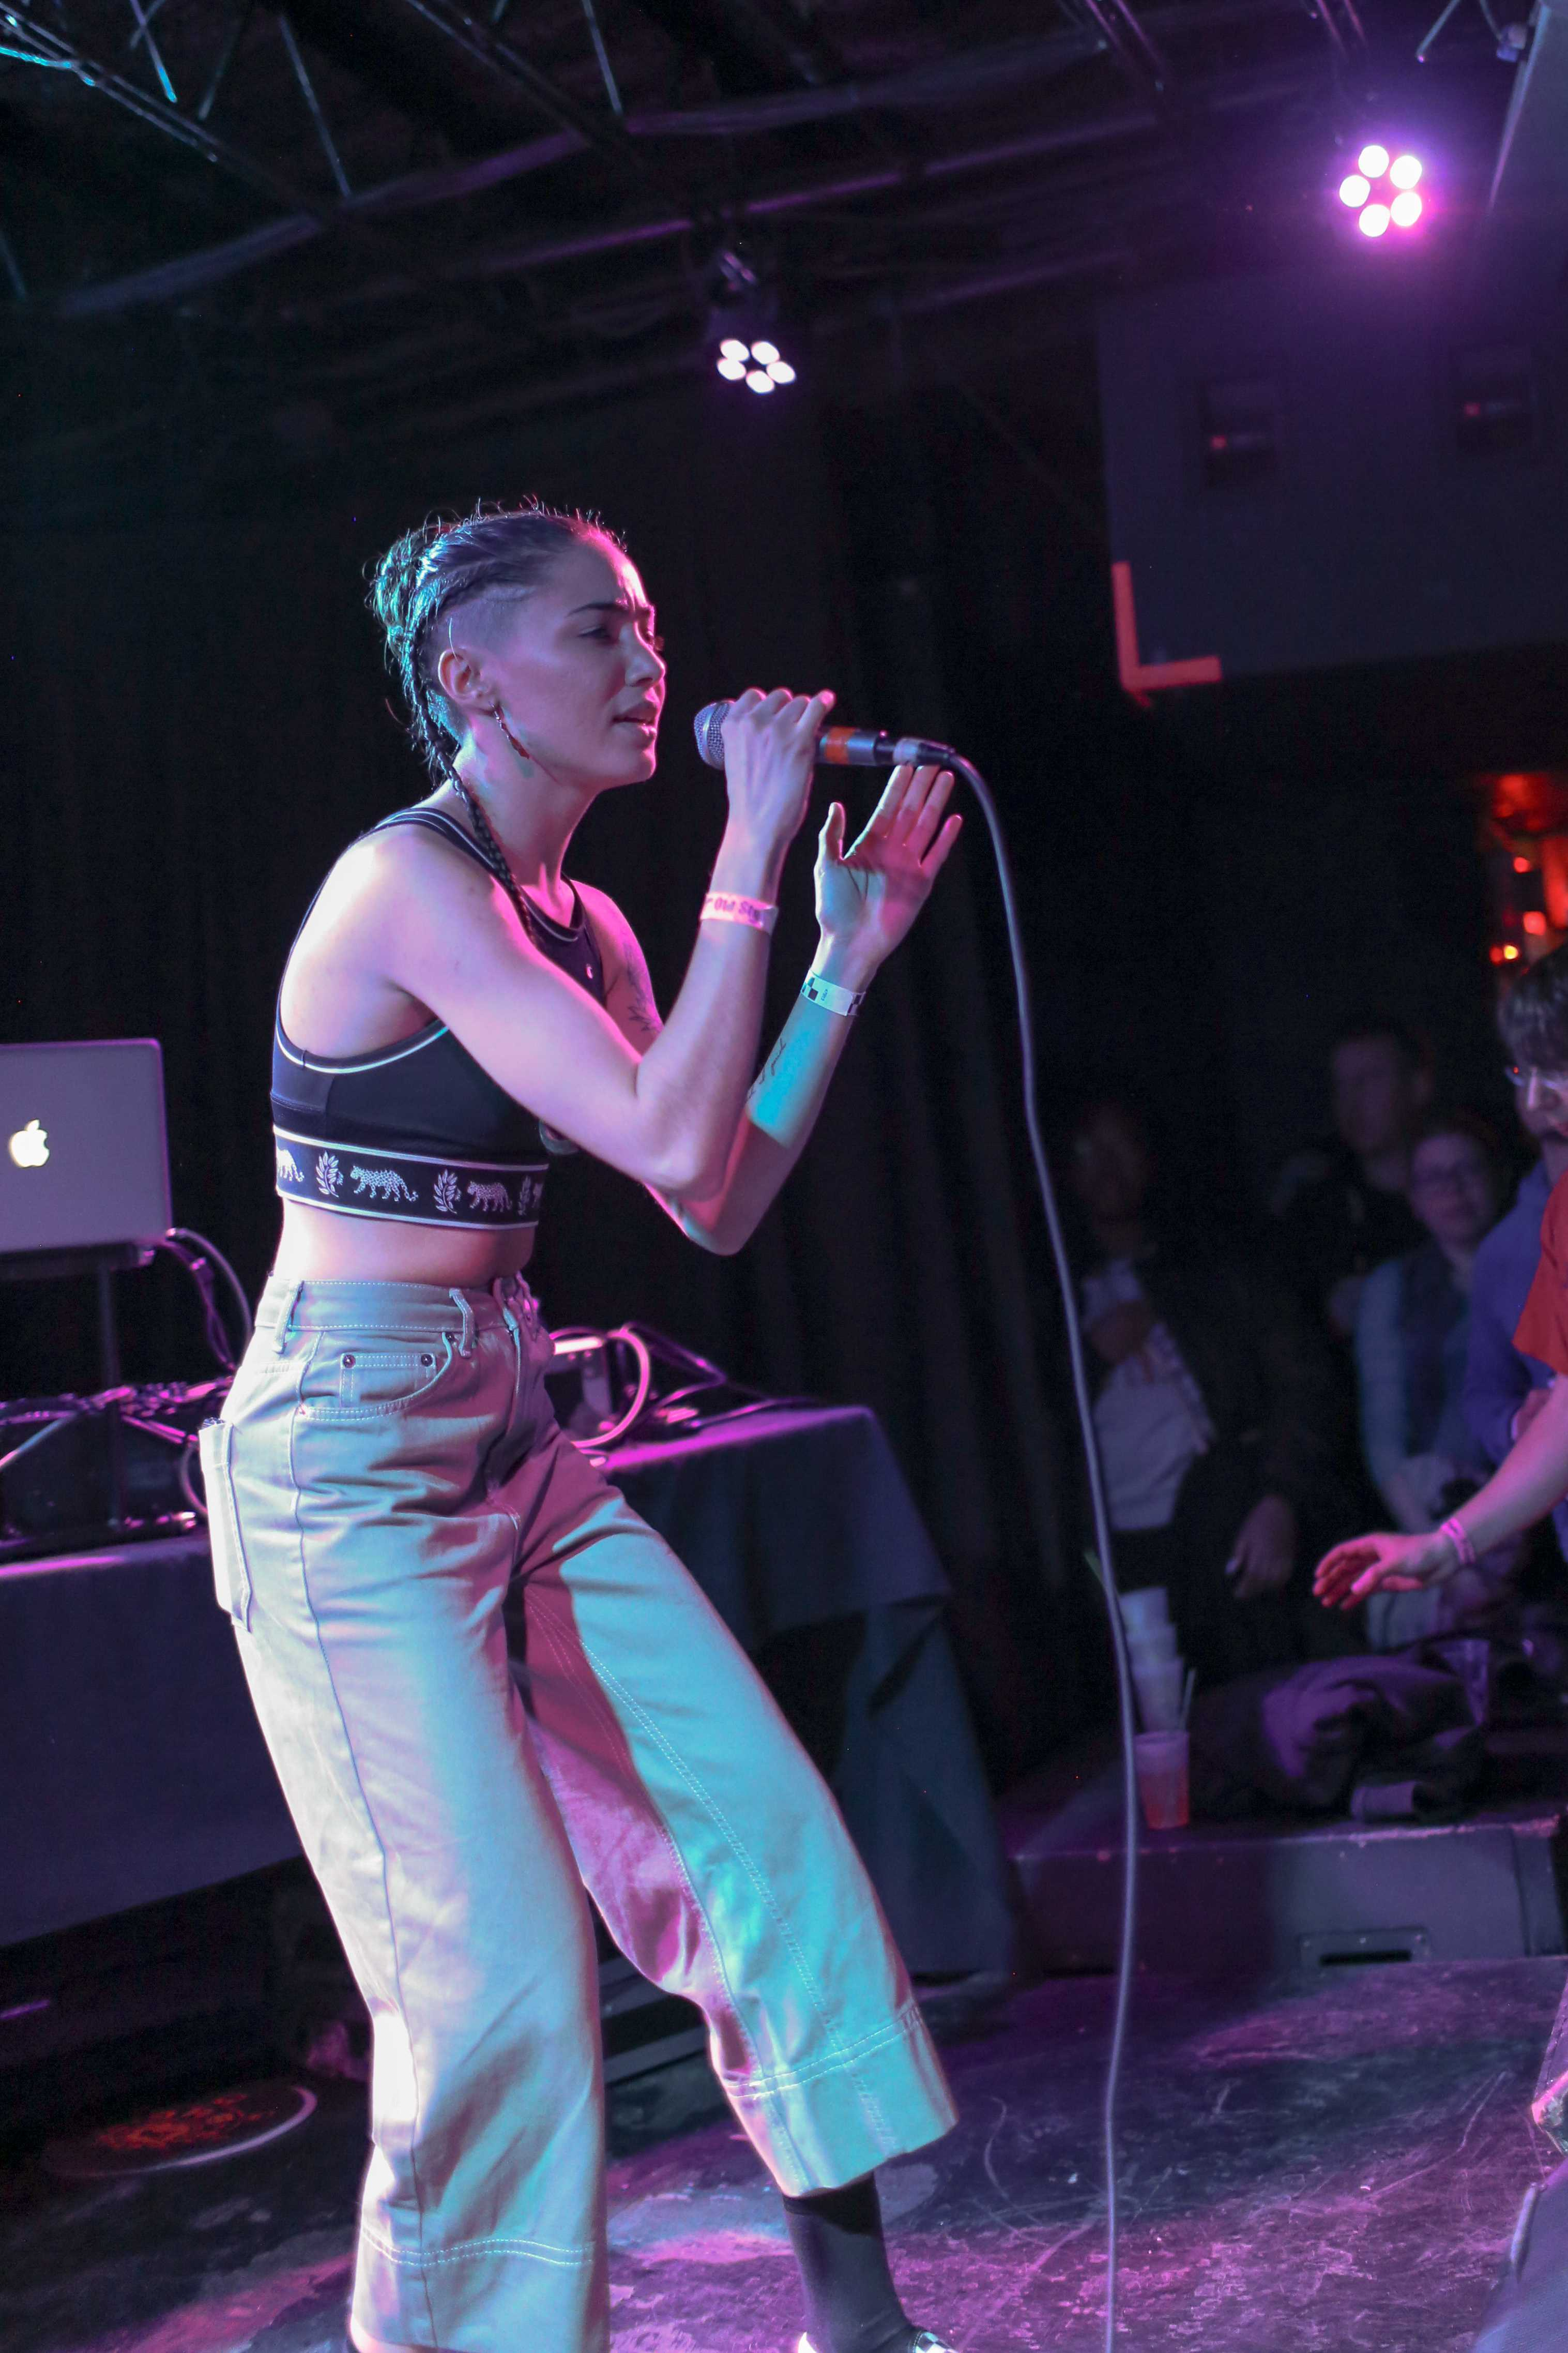 Ness Nite delivers a powerful performance for the crowd at 7th Street Entry. Photo courtesy of Lisa Persson.